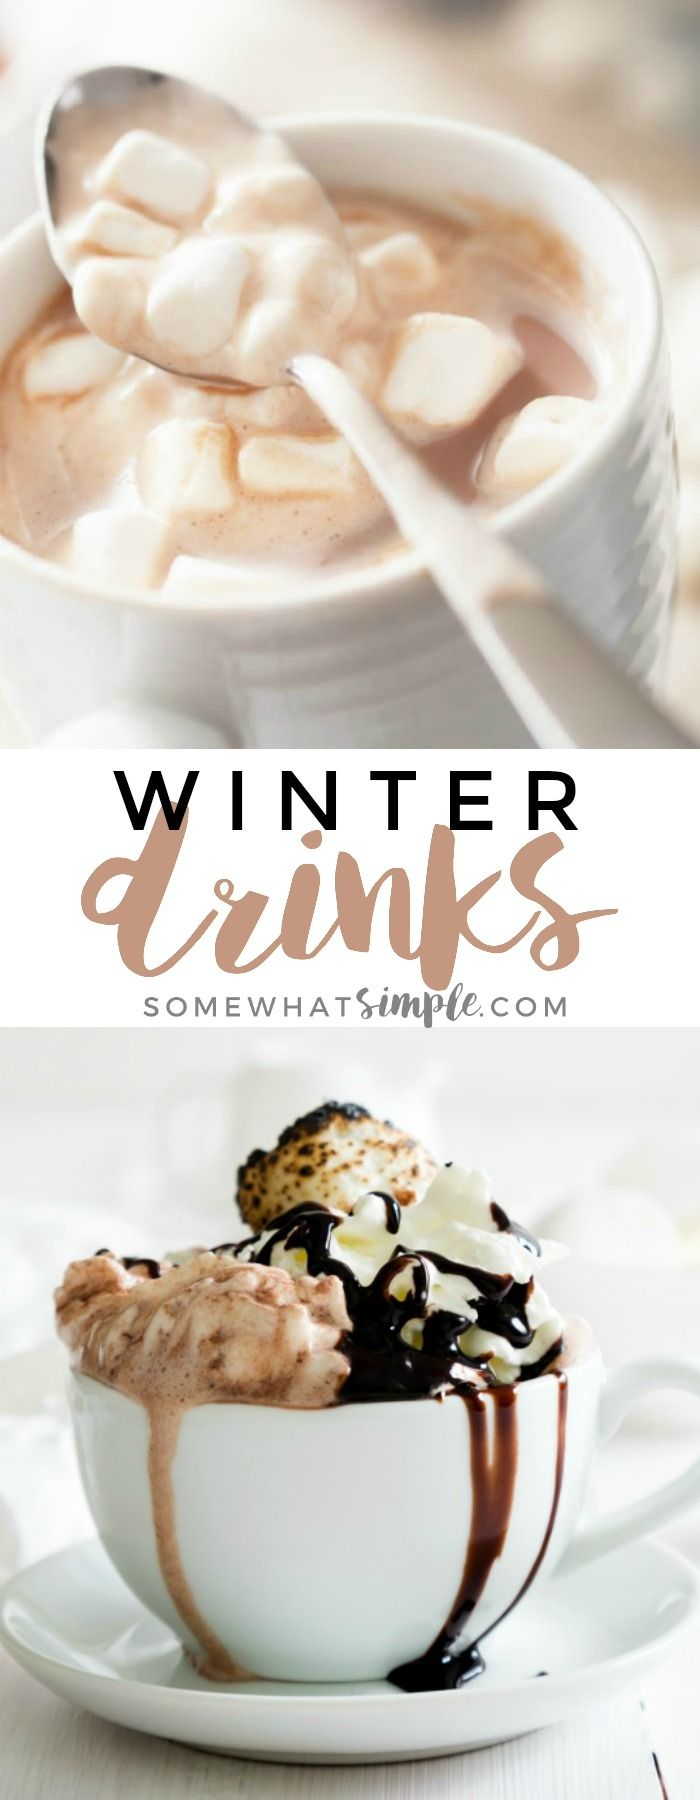 12 Winter Drinks - From caramel apple cider to gingerbread hot chocolate, these delicious winter drinks are bound to keep you warm and satisfied during these colder winter months! #drink #winter